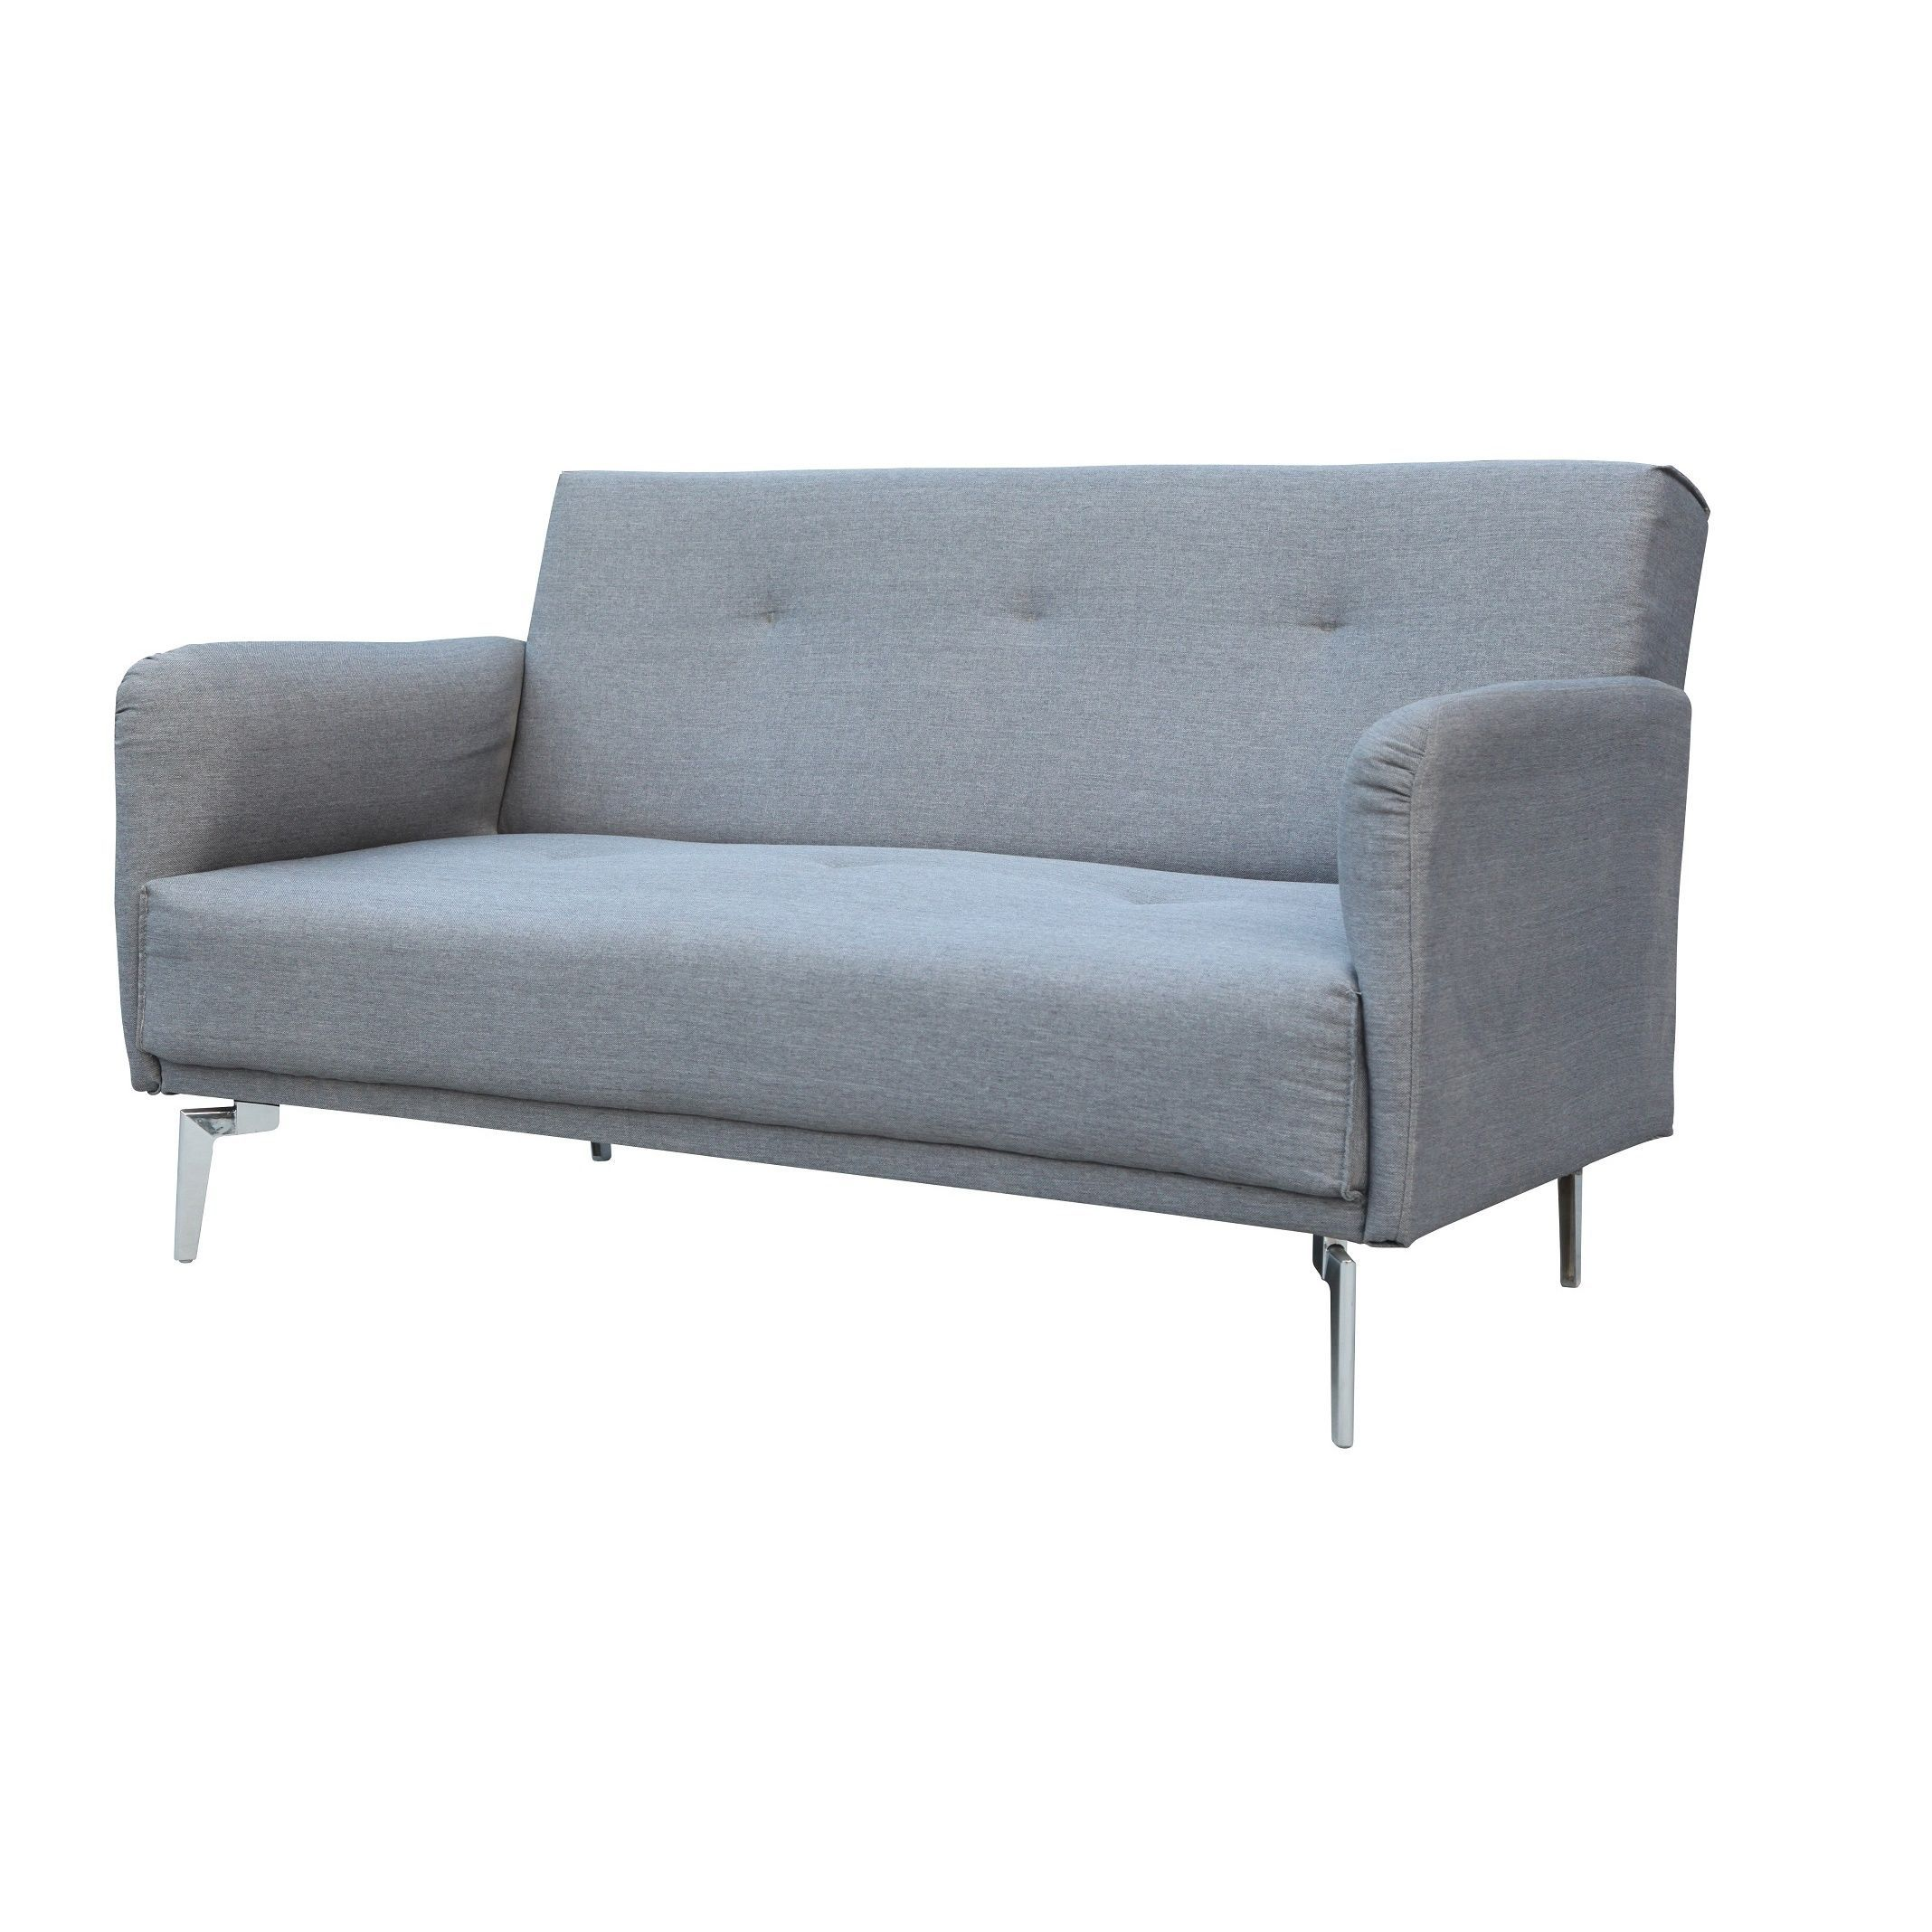 The Capetown loveseat will add a contemporary flair to your small ...